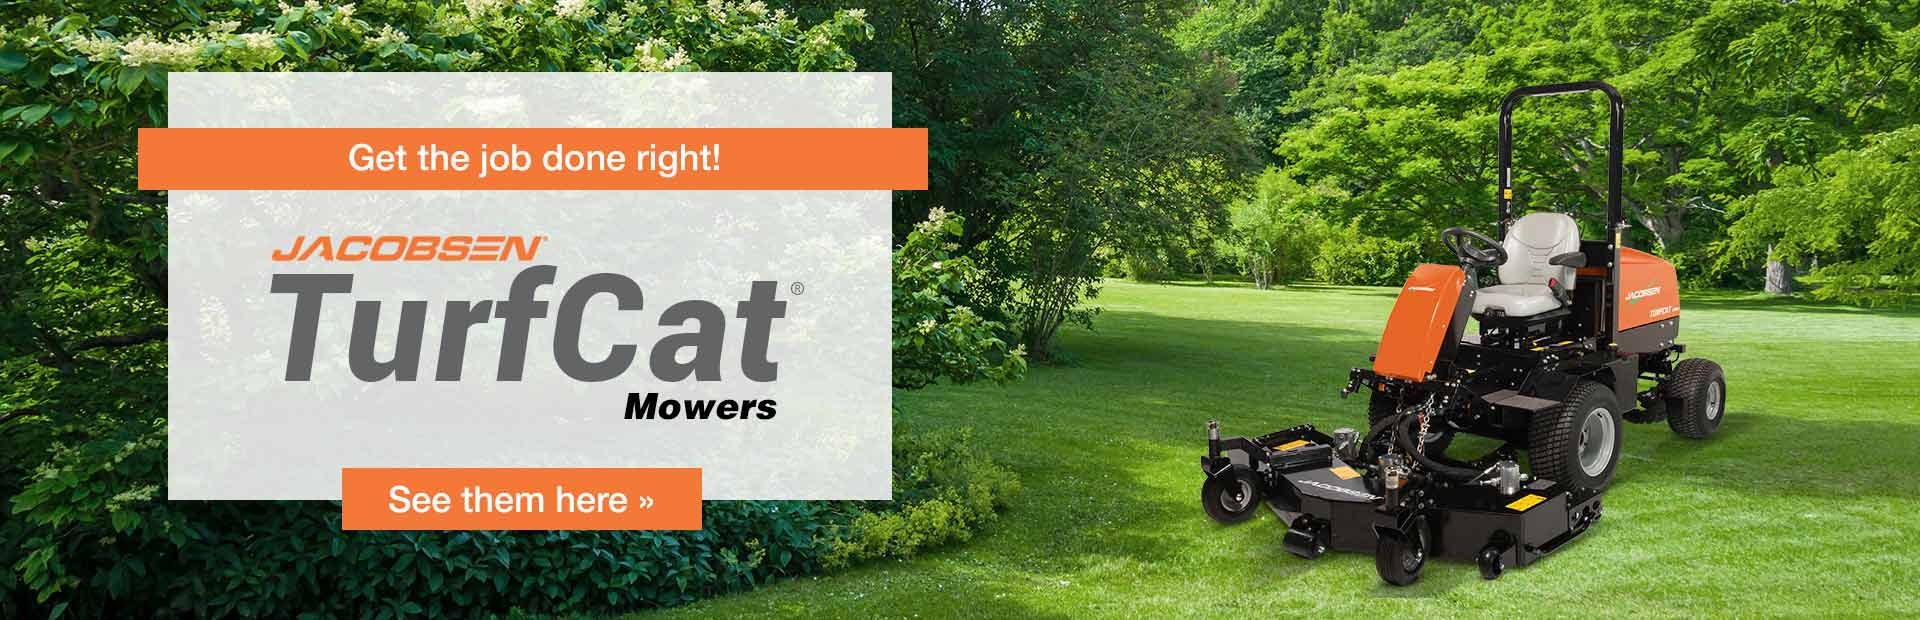 Jacobsen TurfCat® Mowers: Click here to view the models.